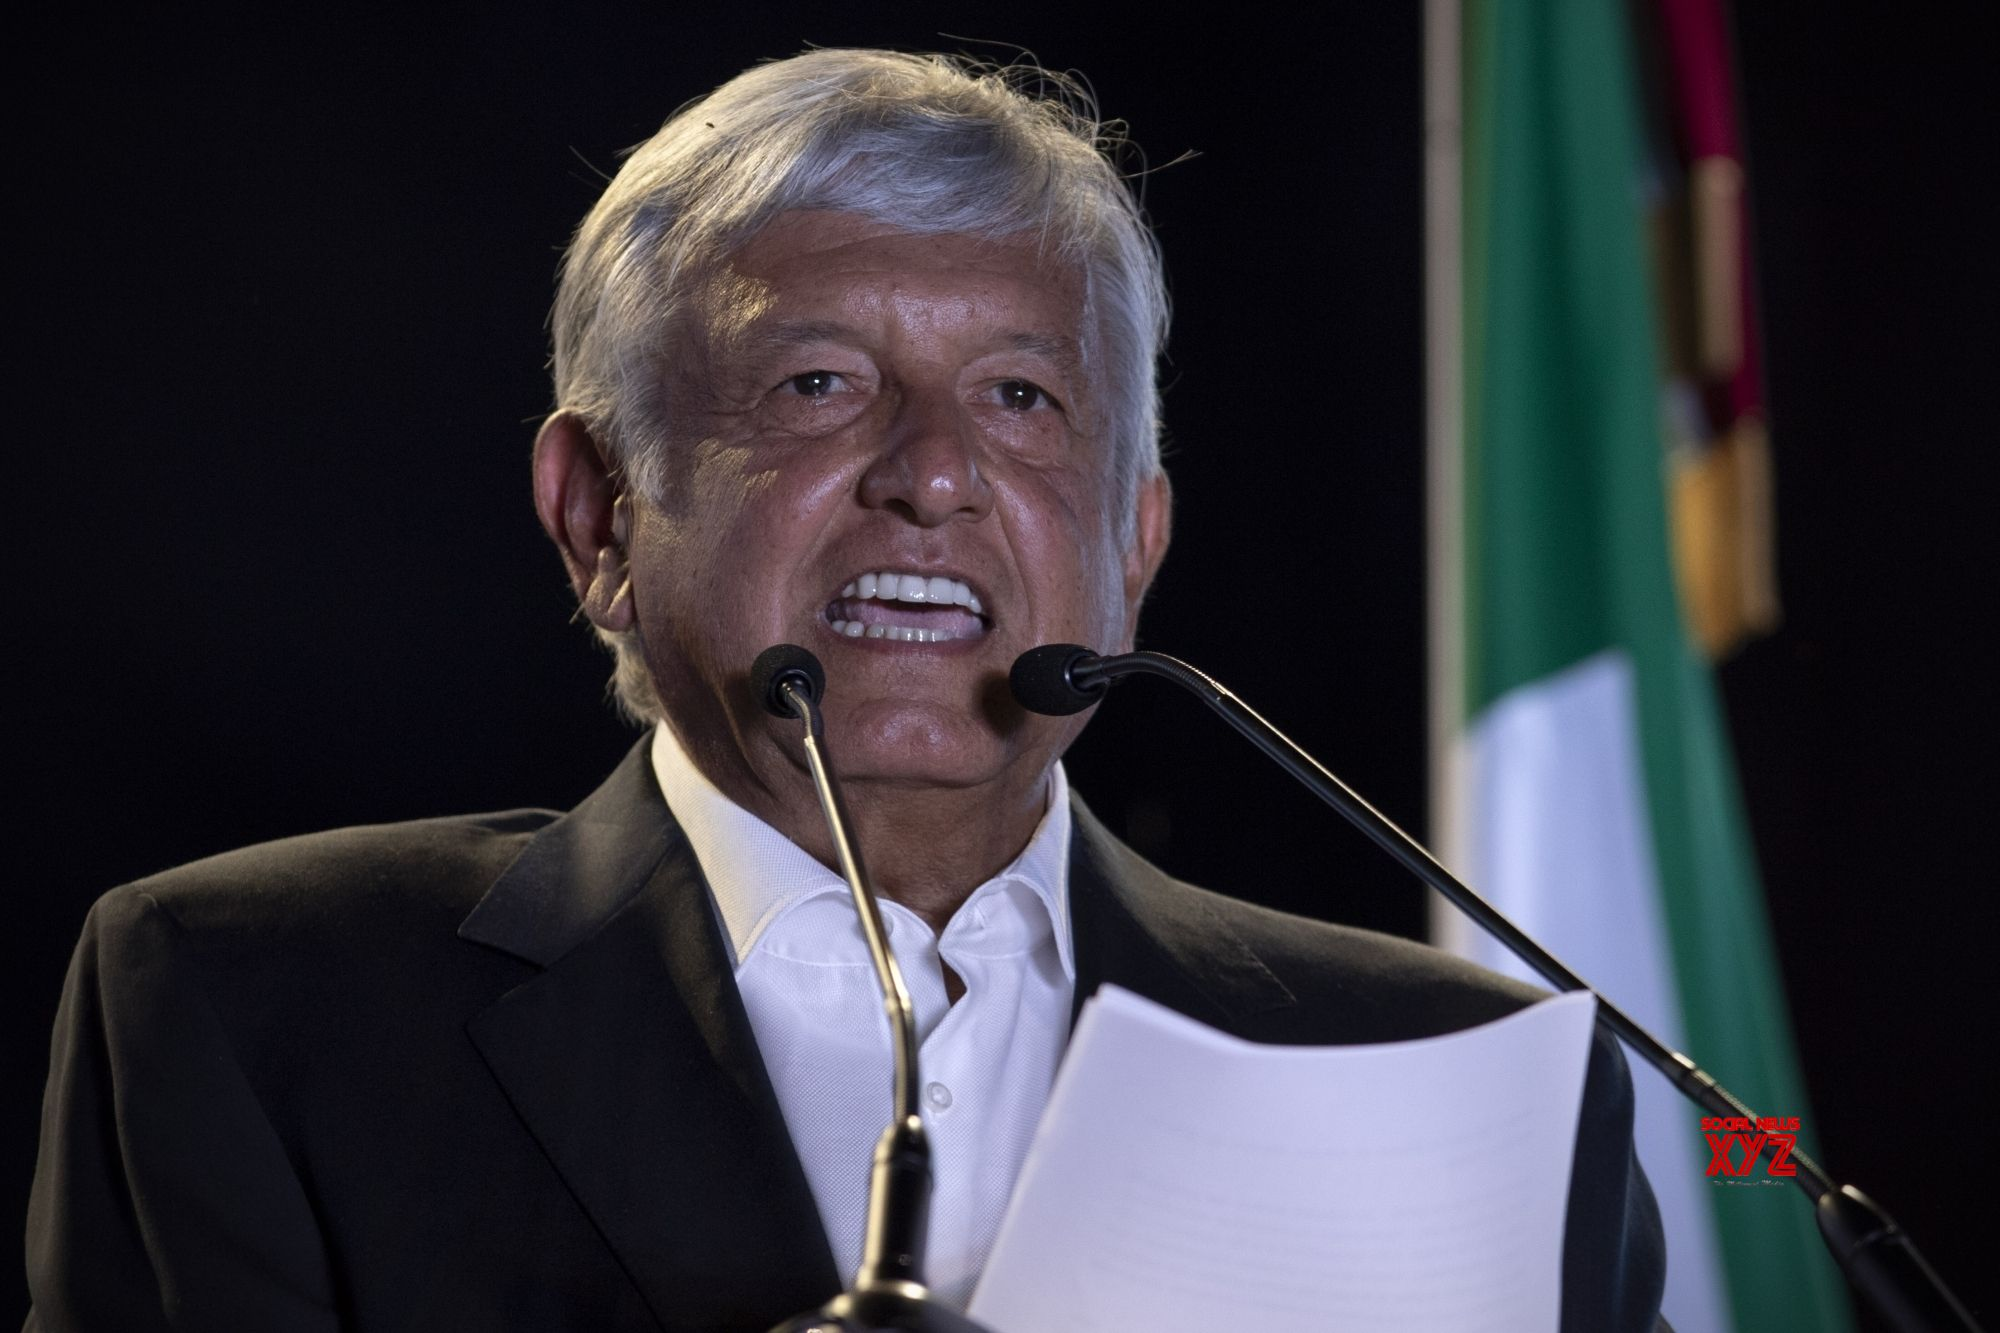 Mexico's new president takes office